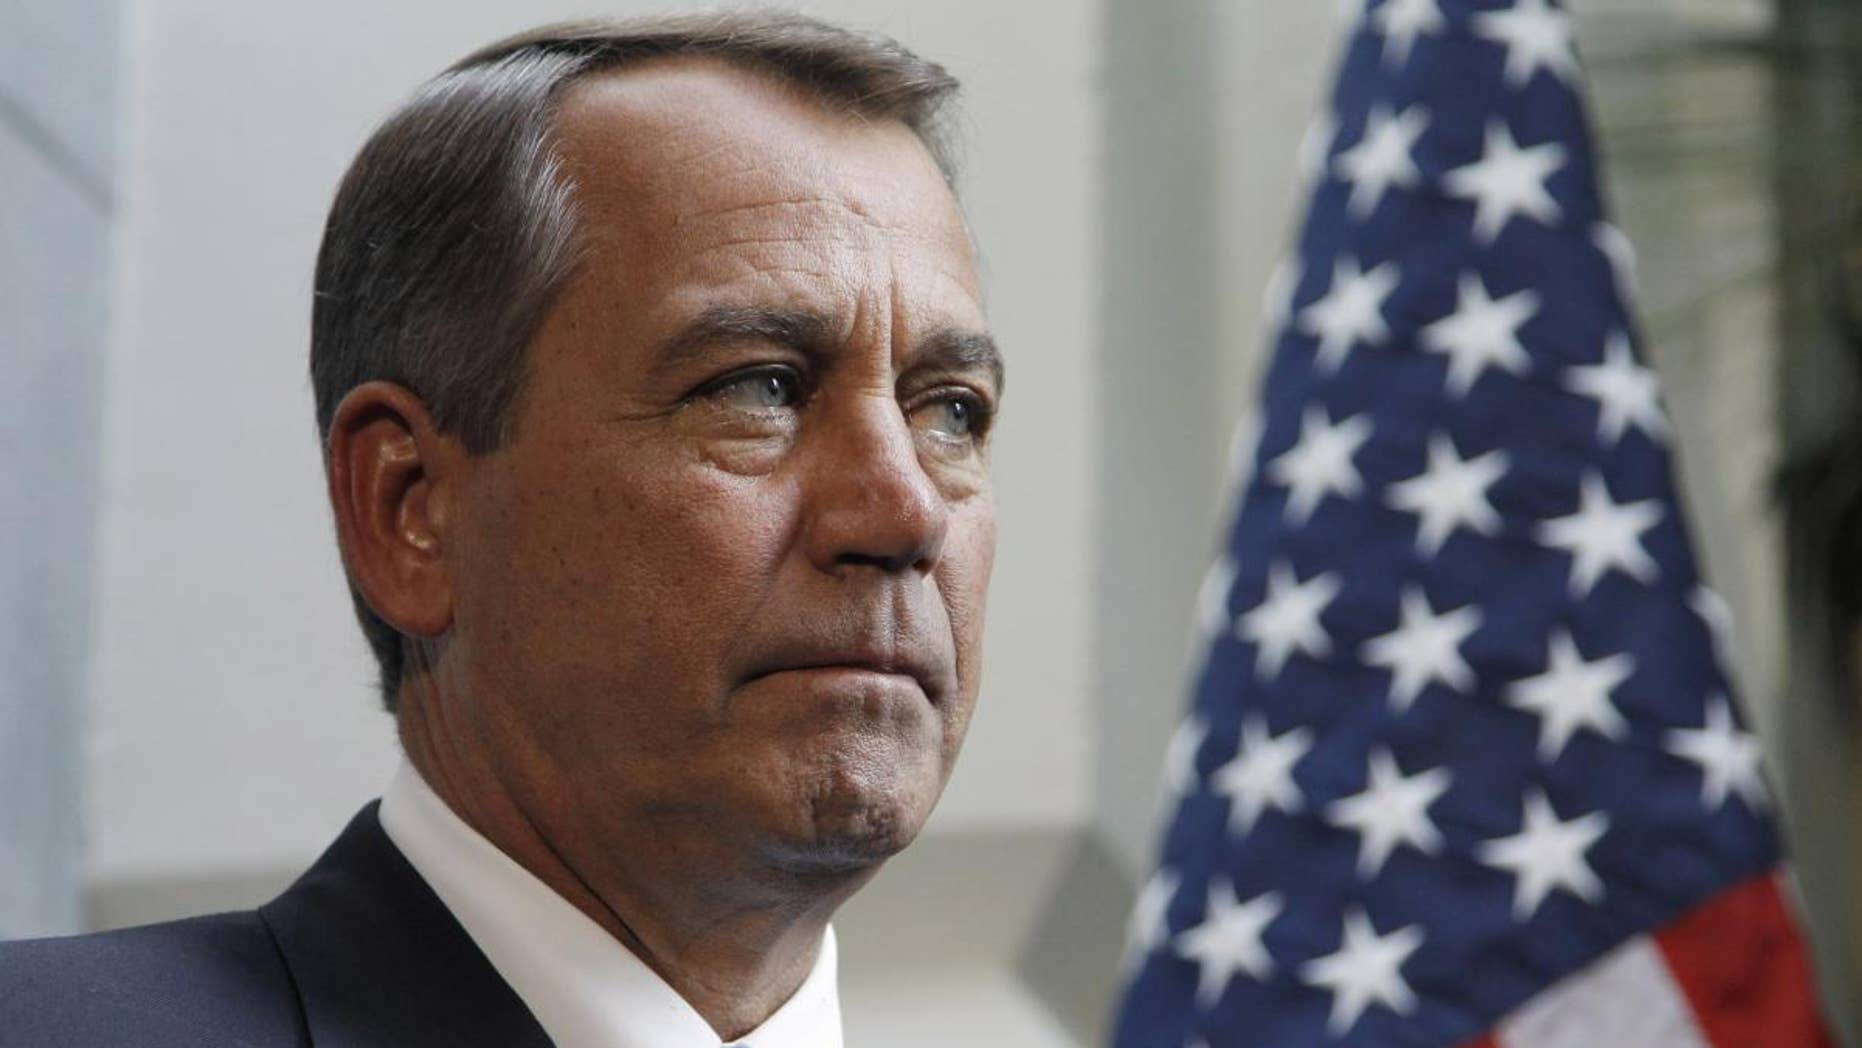 House Speaker John Boehner, R-Ohio. (AP Photo/Alex Brandon)